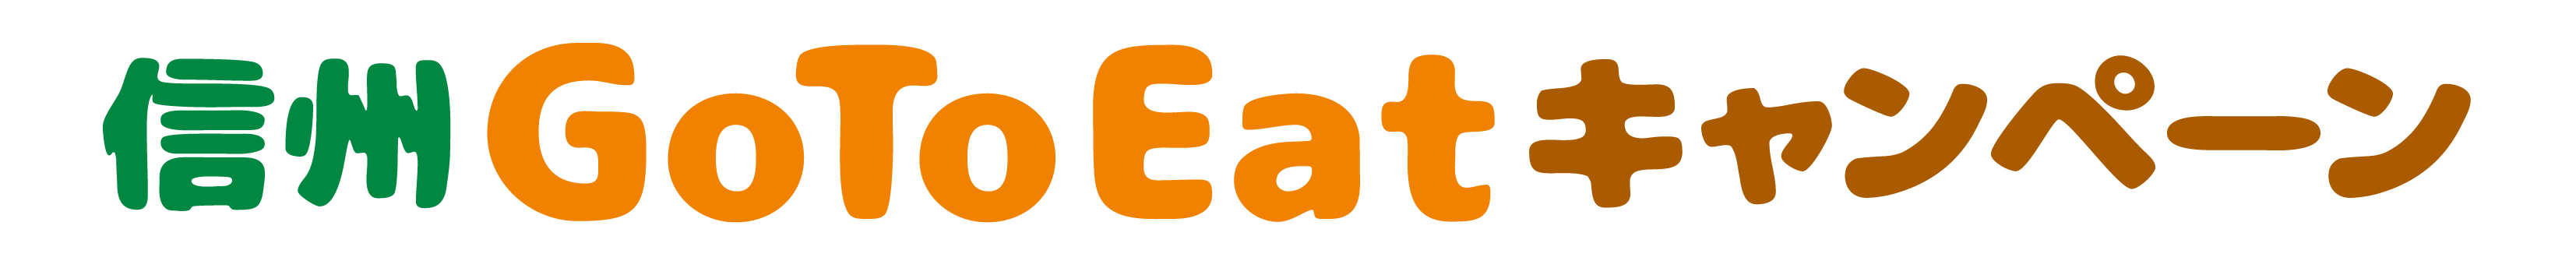 title_logo1.png